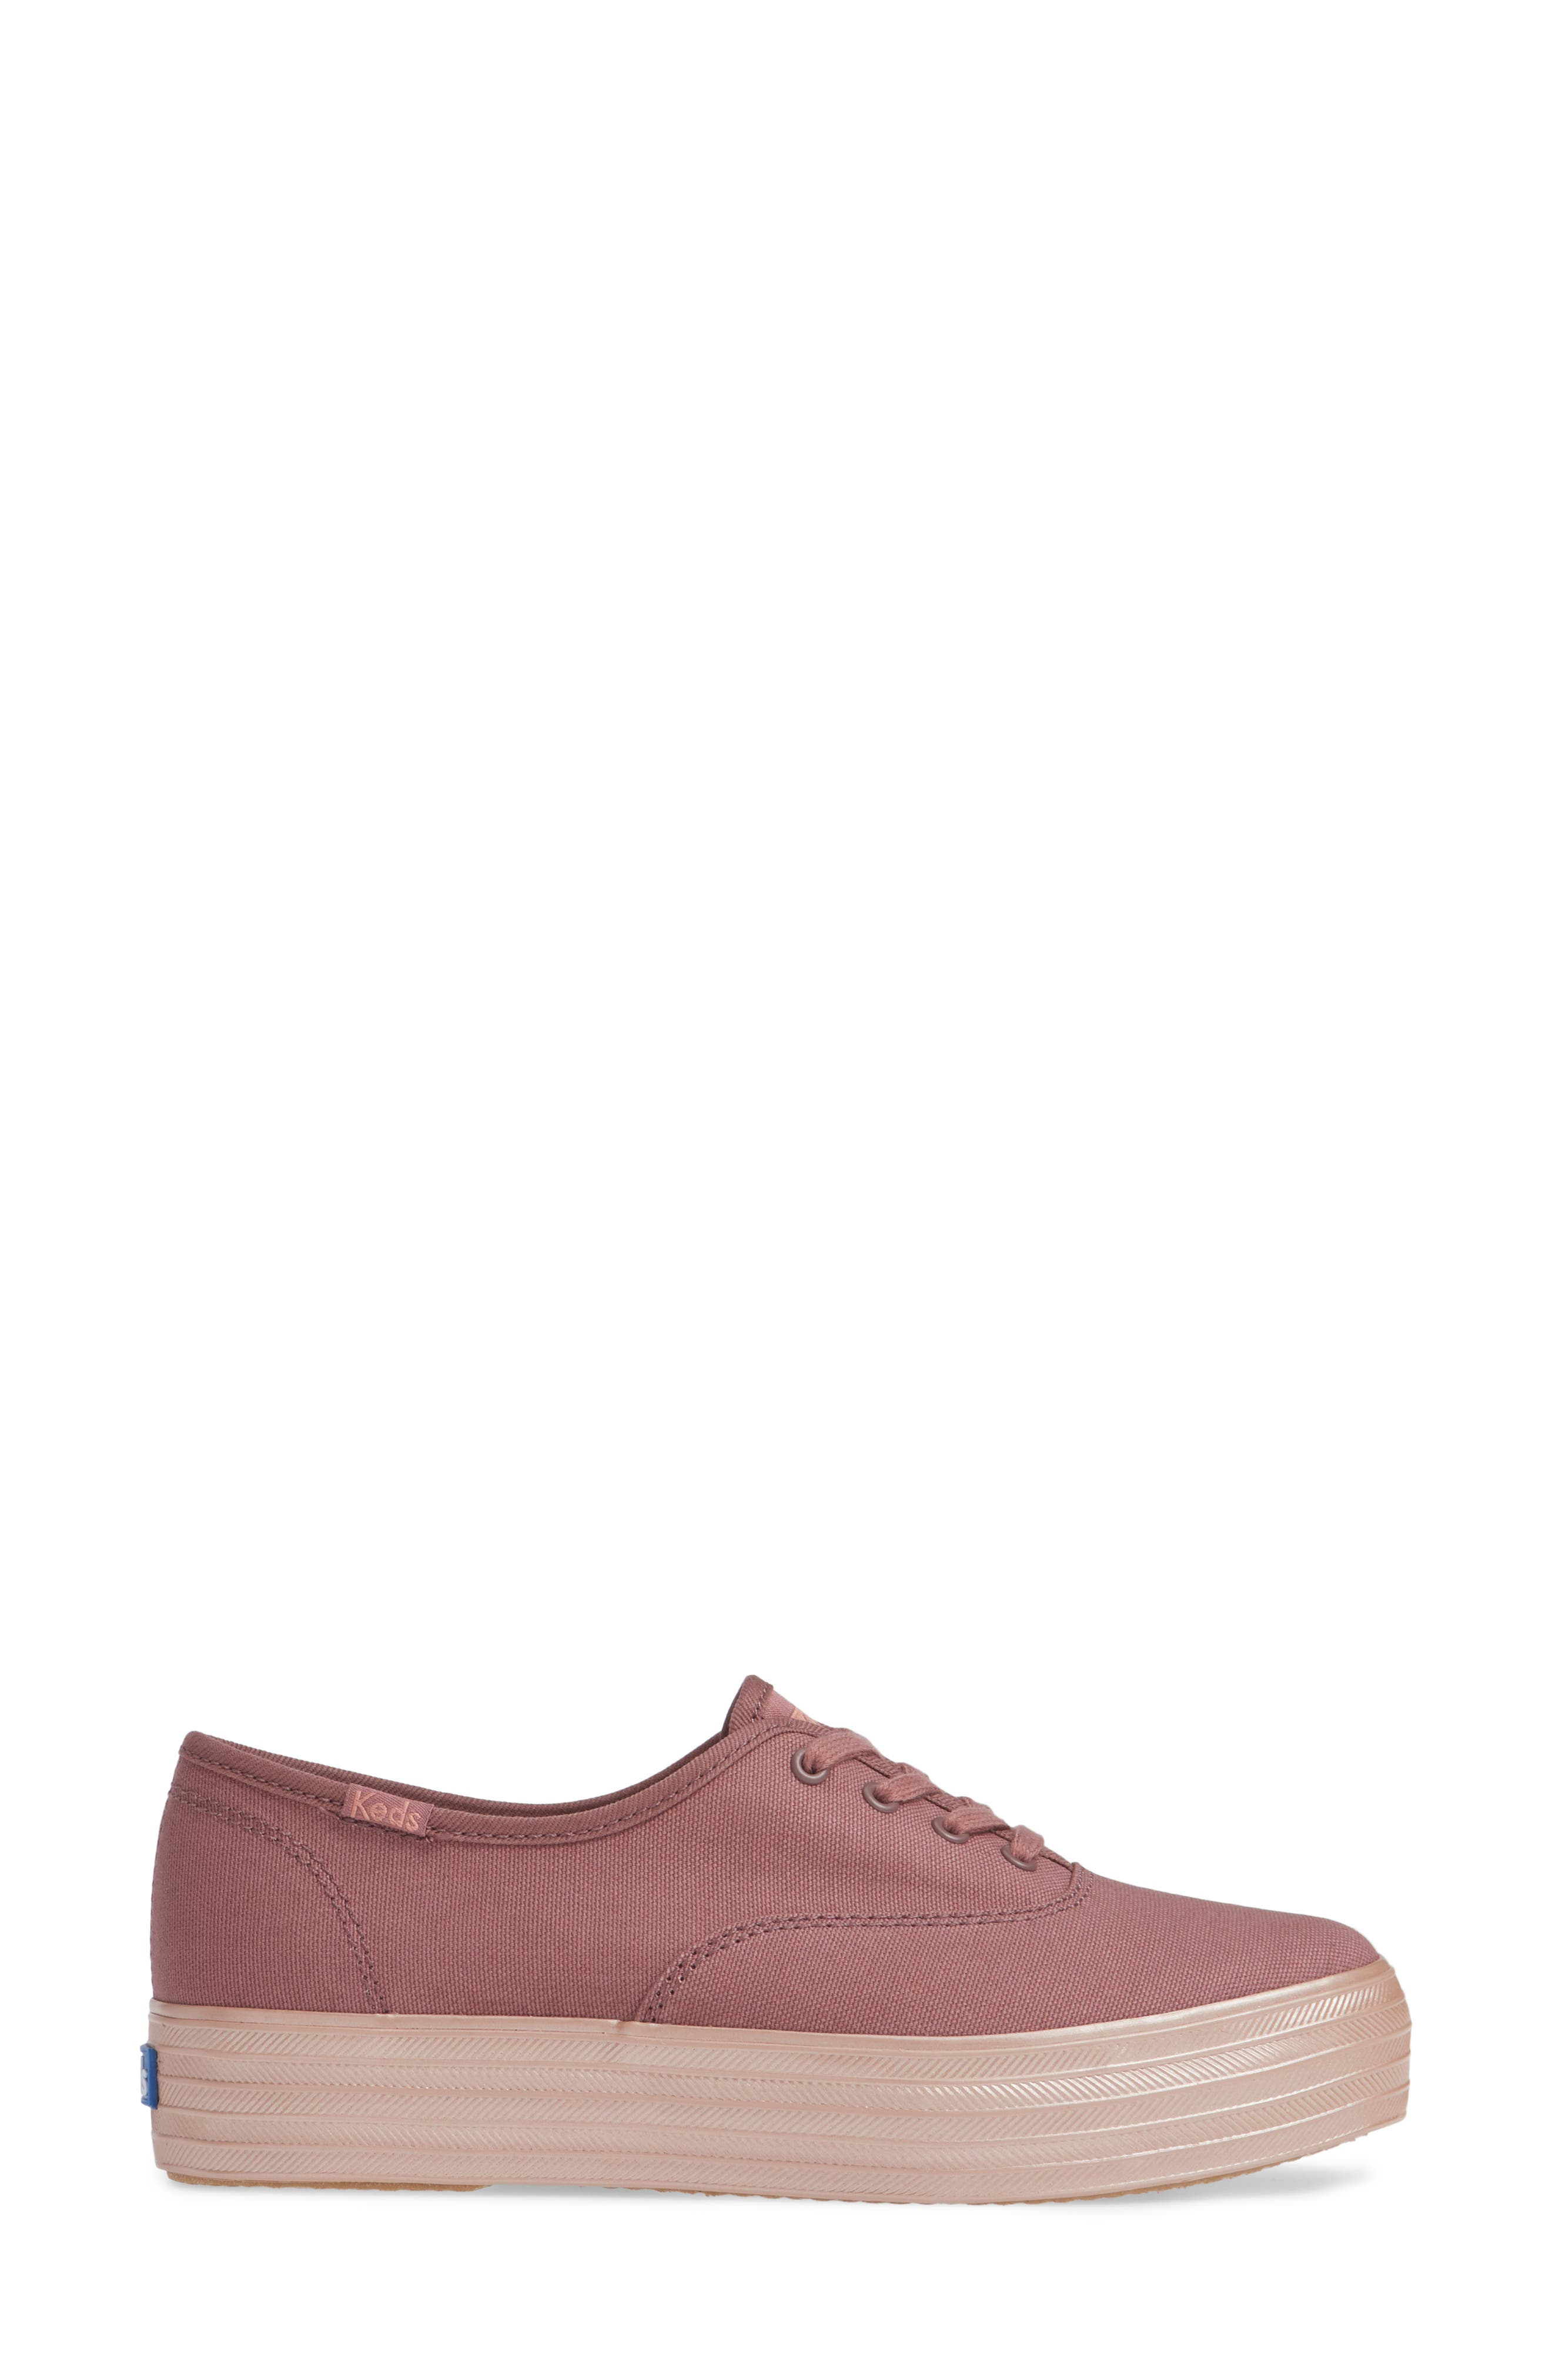 KEDS<SUP>®</SUP>, Triple Shimmer Sneaker, Alternate thumbnail 3, color, MAUVE